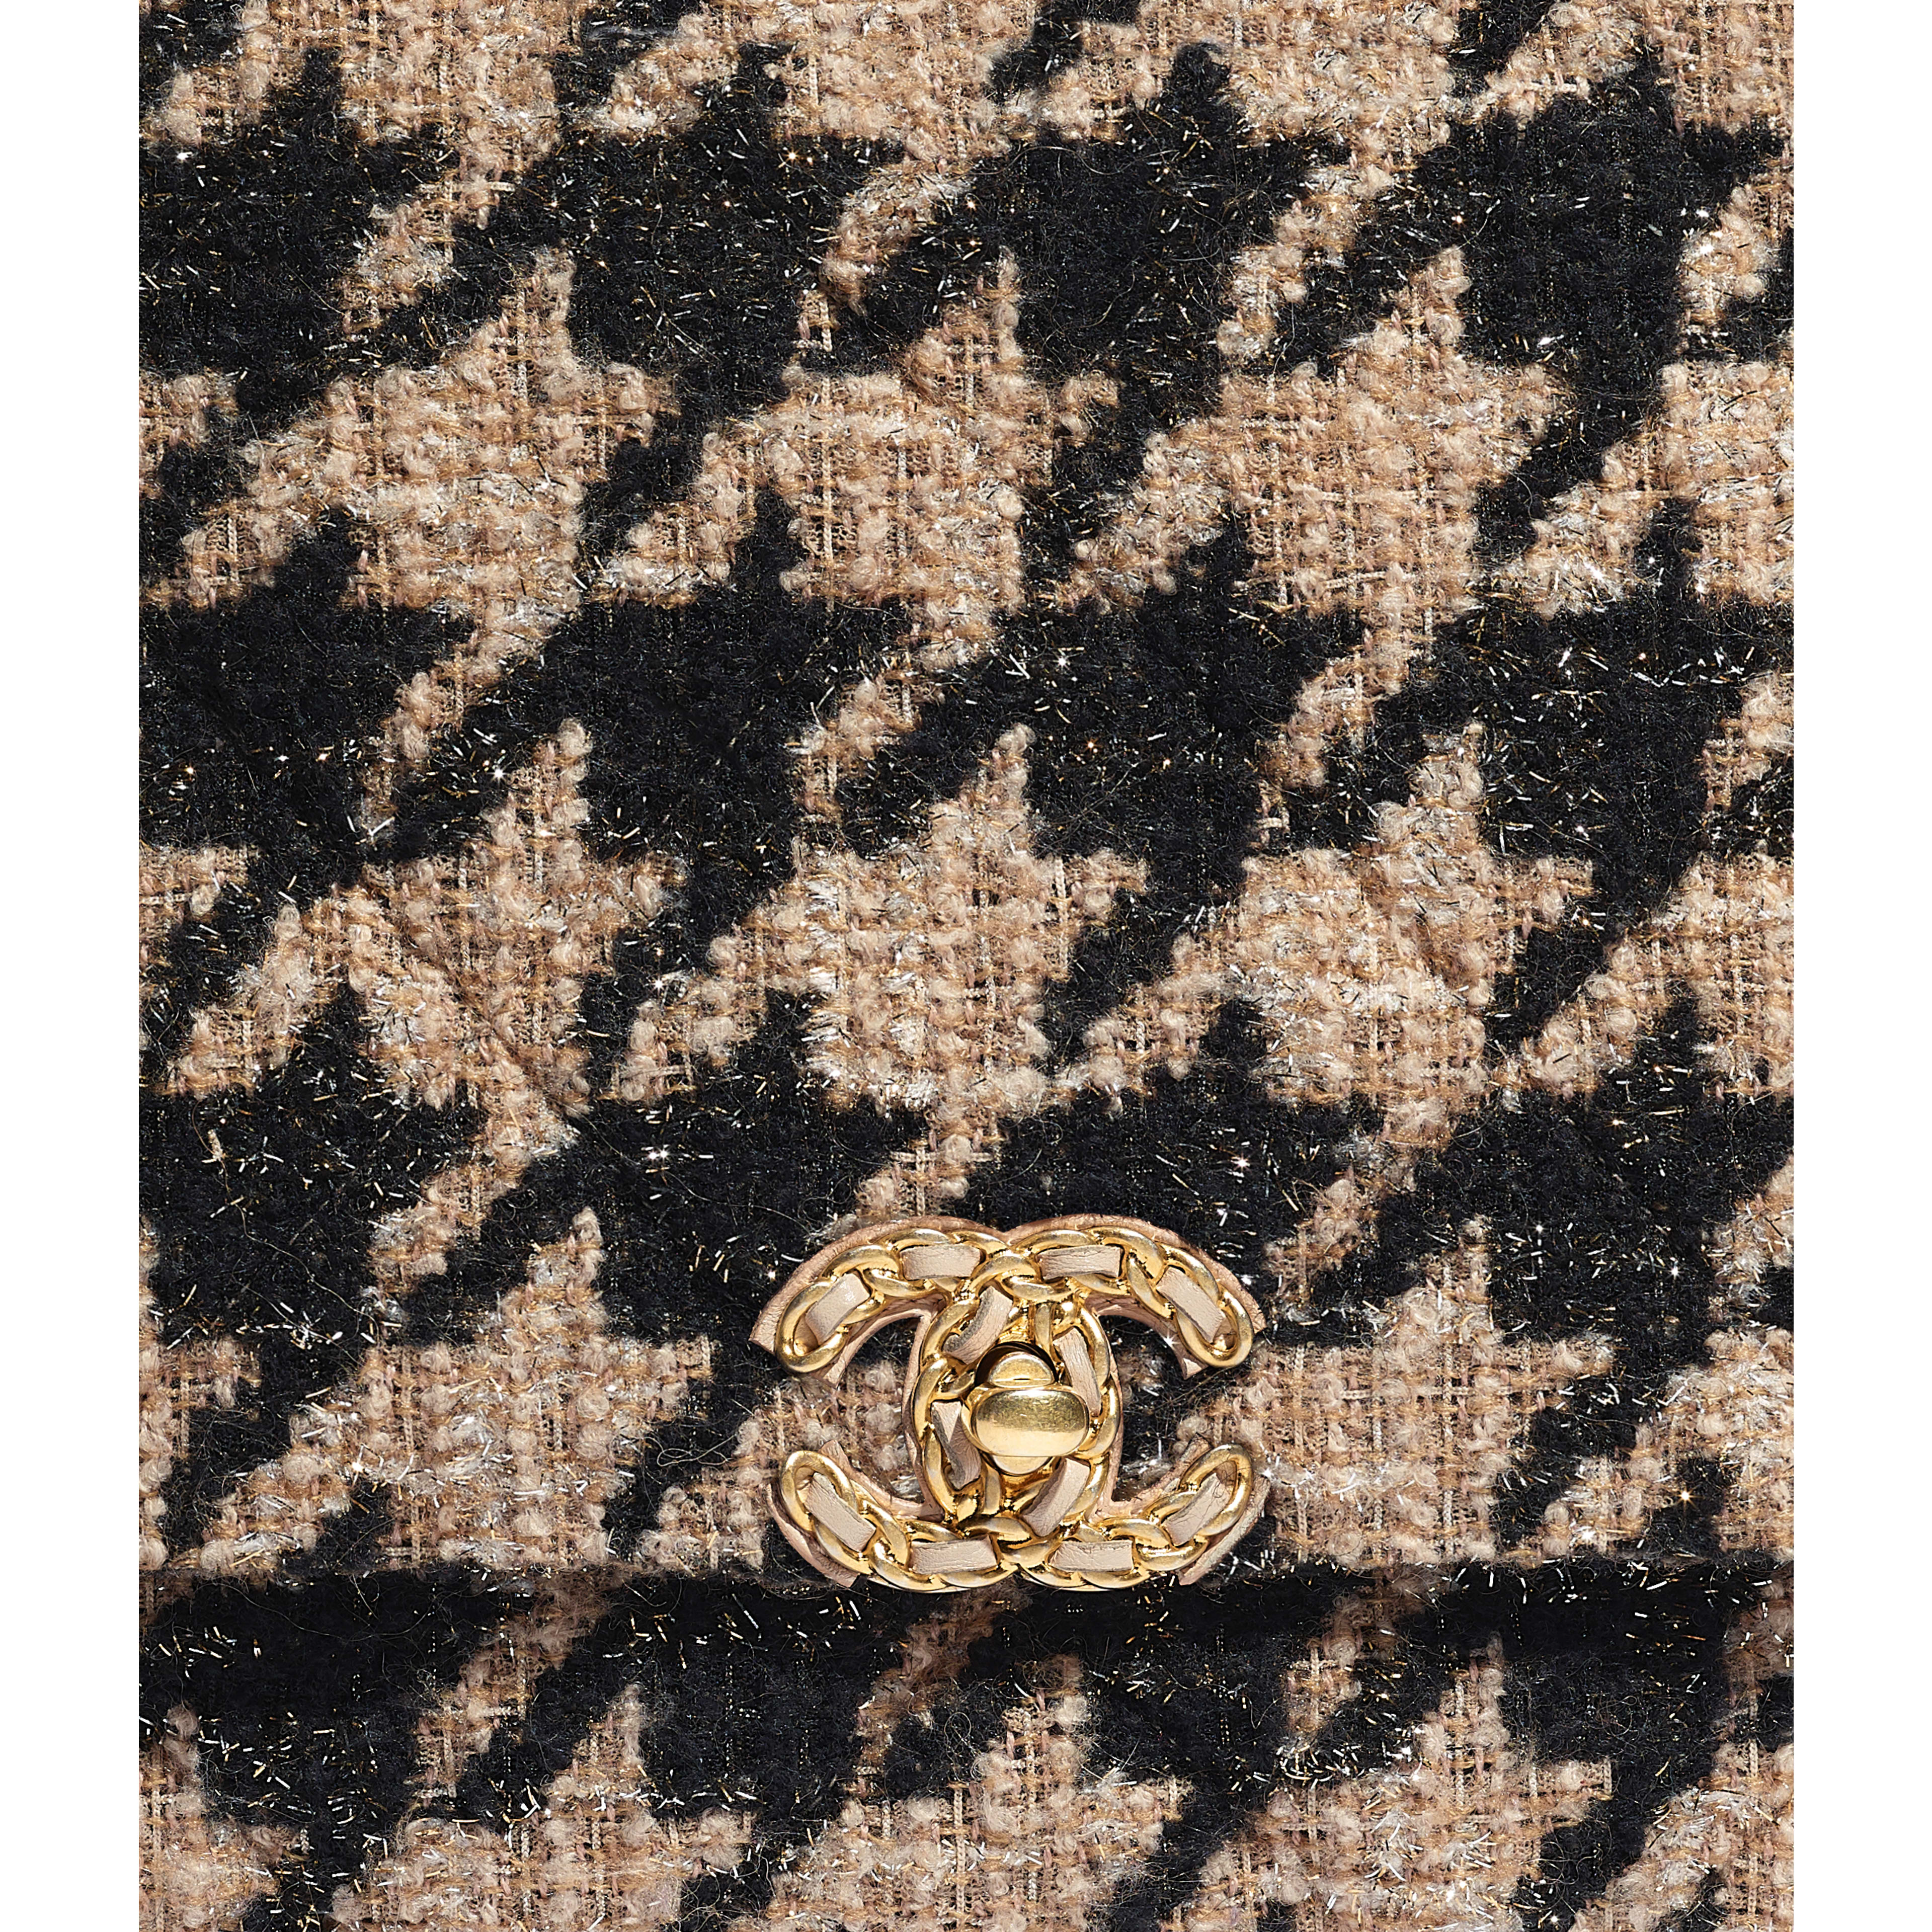 CHANEL 19 Maxi Flap Bag - Beige & Black - Tweed, Gold-Tone, Silver-Tone & Ruthenium-Finish Metal - Extra view - see full sized version